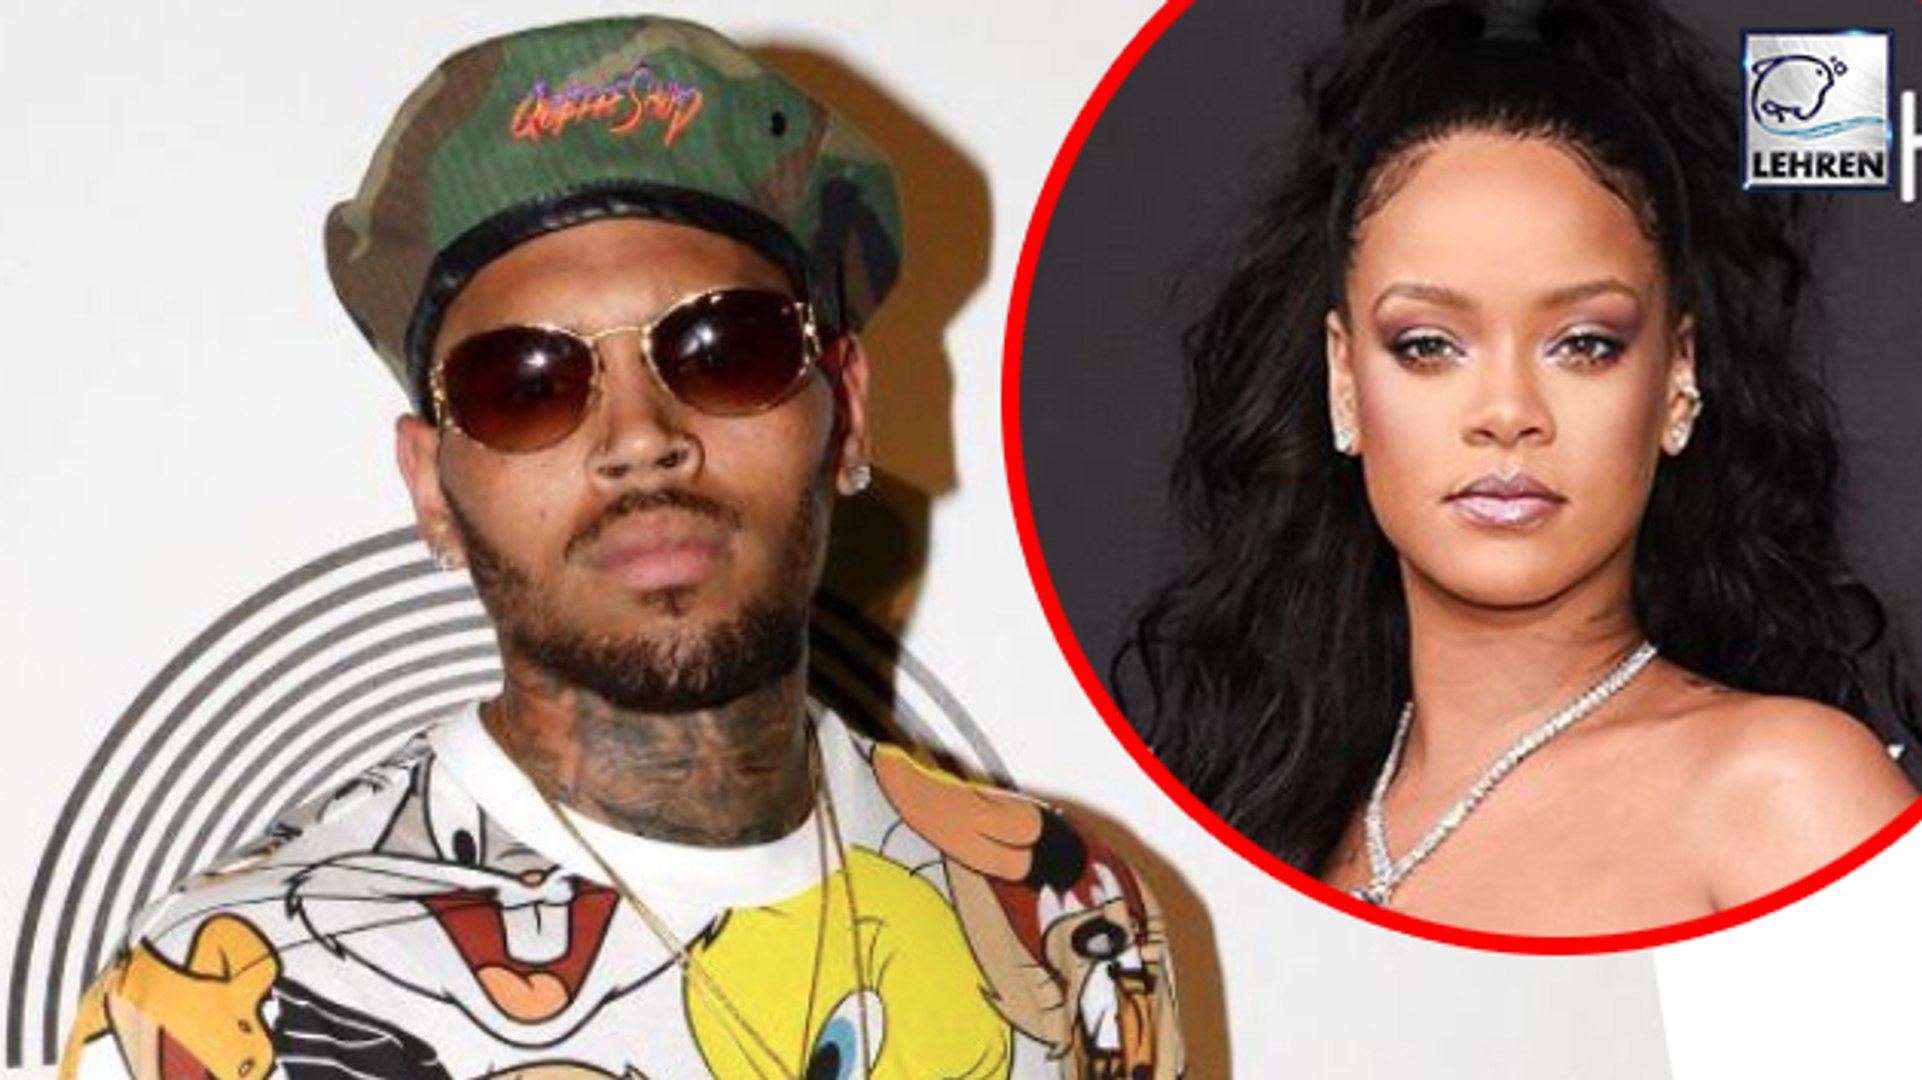 Chris Brown Wants To Tour With Rihanna 9 Years After Beating Her Up